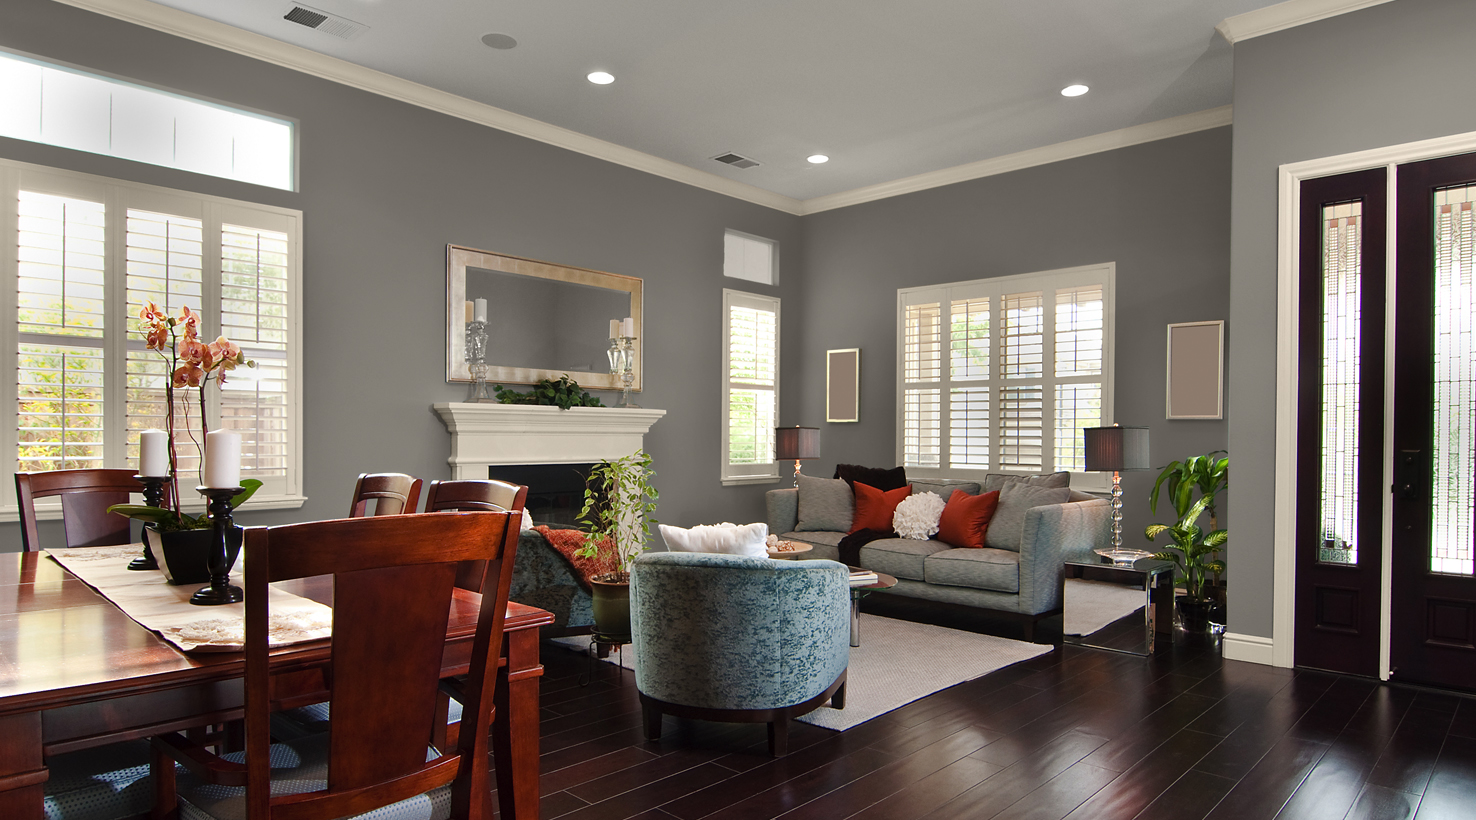 ideas for painting my living room furniture layout small paint color inspiration gallery sherwin williams neutrals